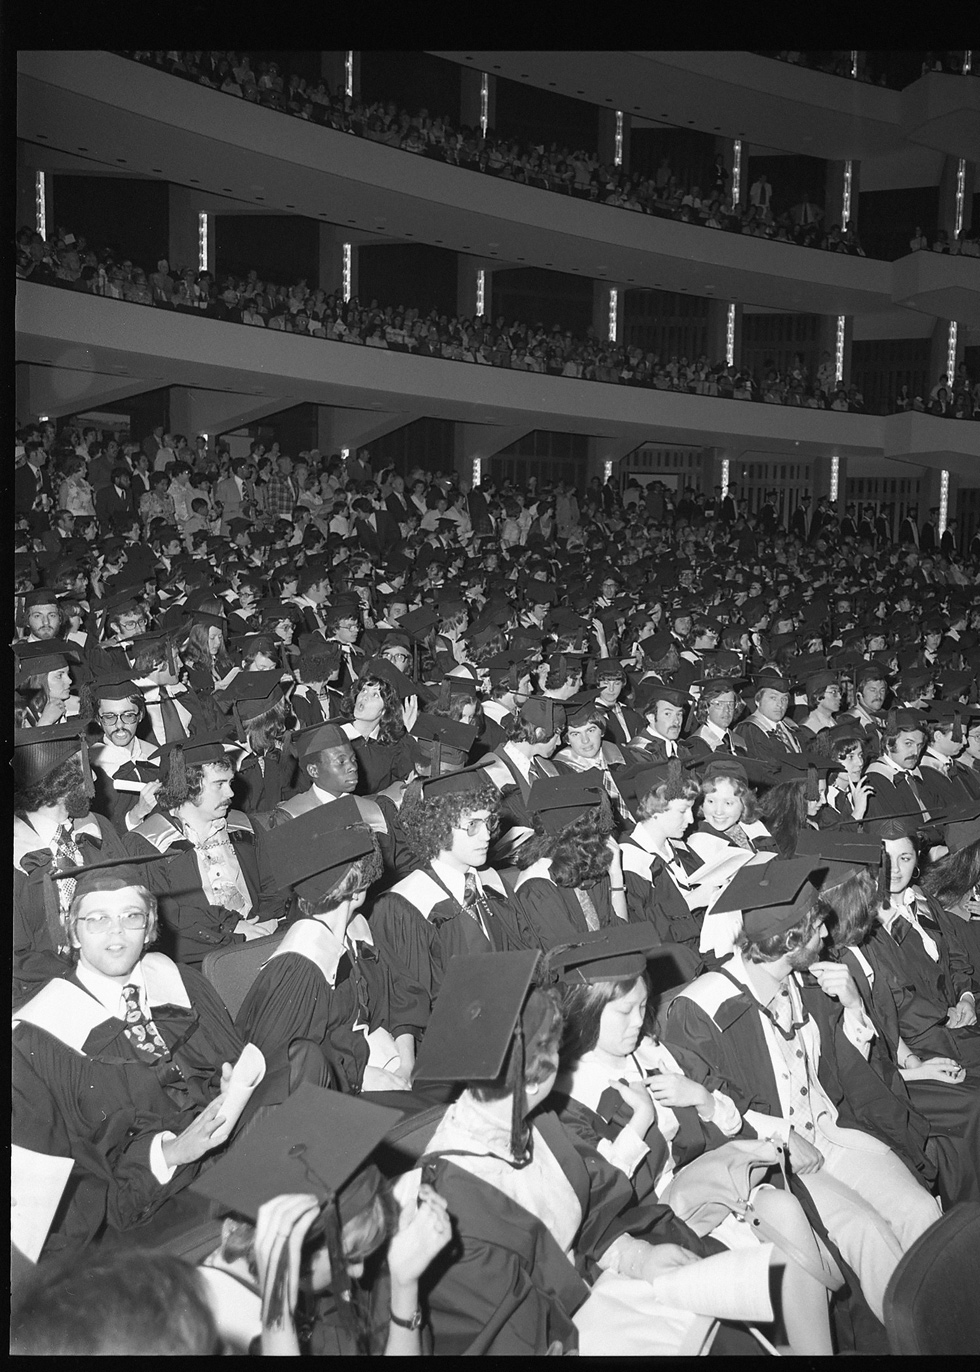 Black and white photo of a theater full of students dressed in graduation gowns and mortar boards in 1976.